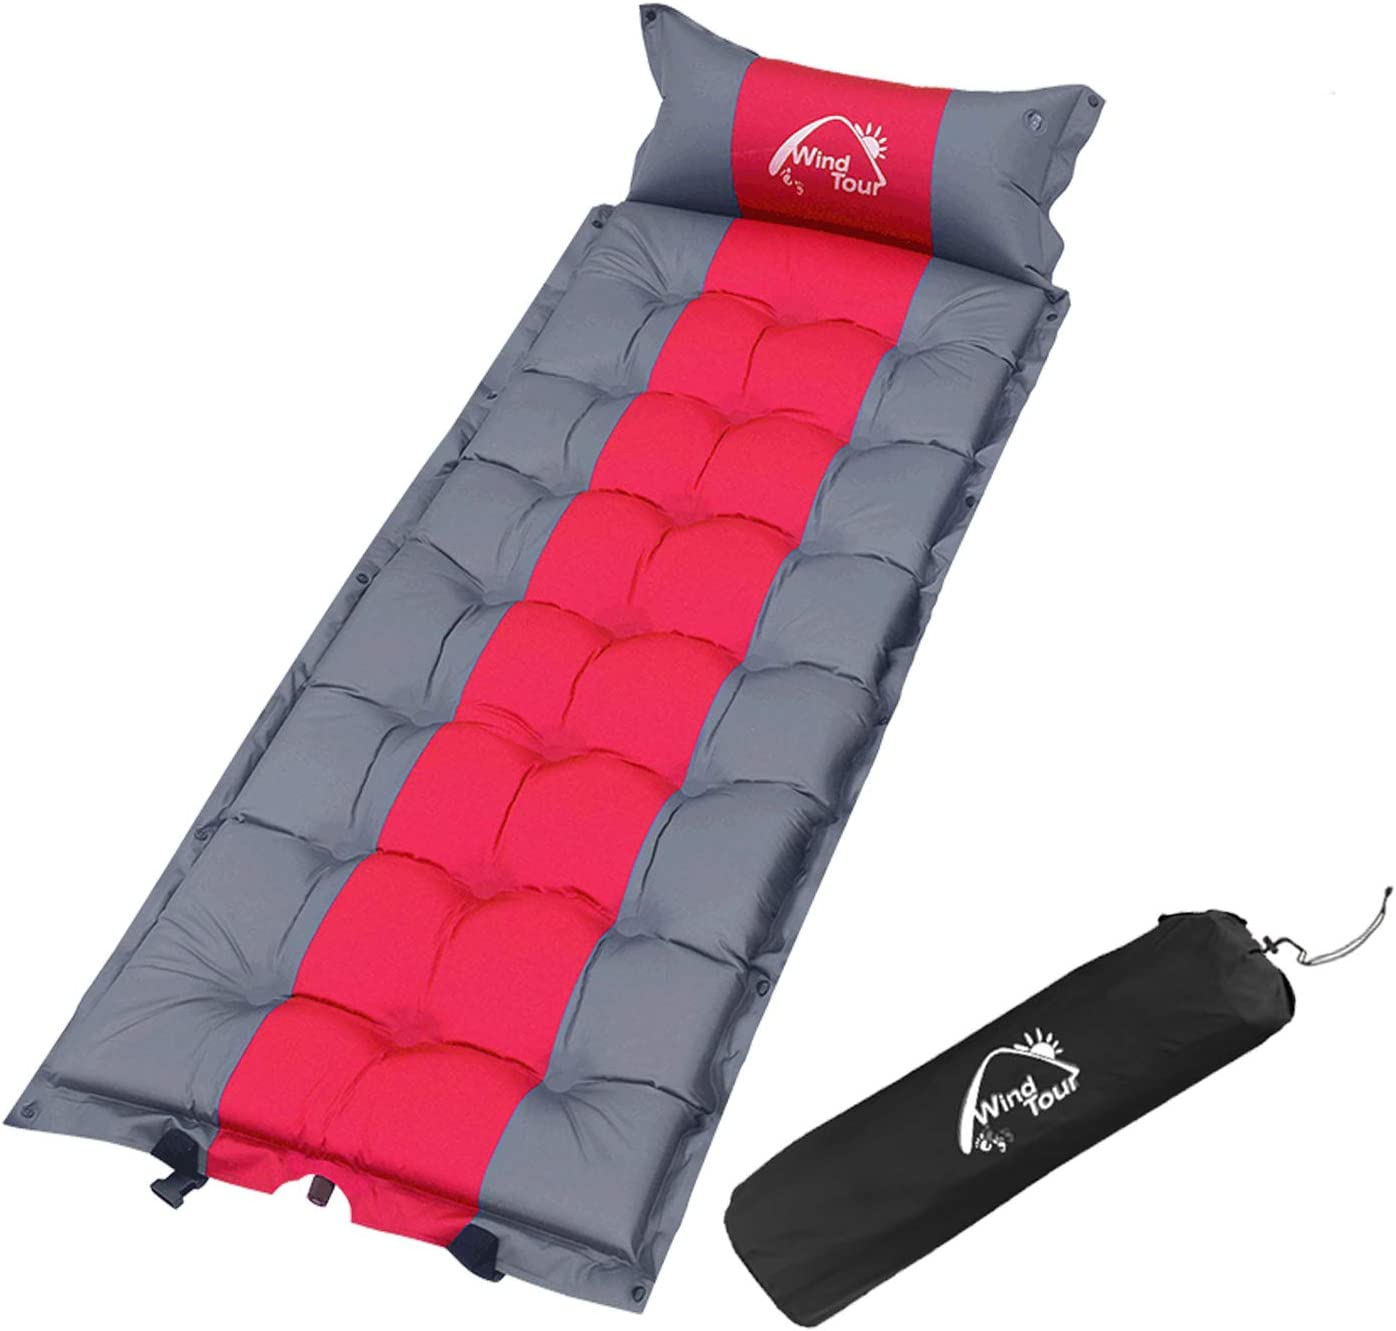 Wind Tour Sleeping Pad Self Inflating with Pillow for Camping -